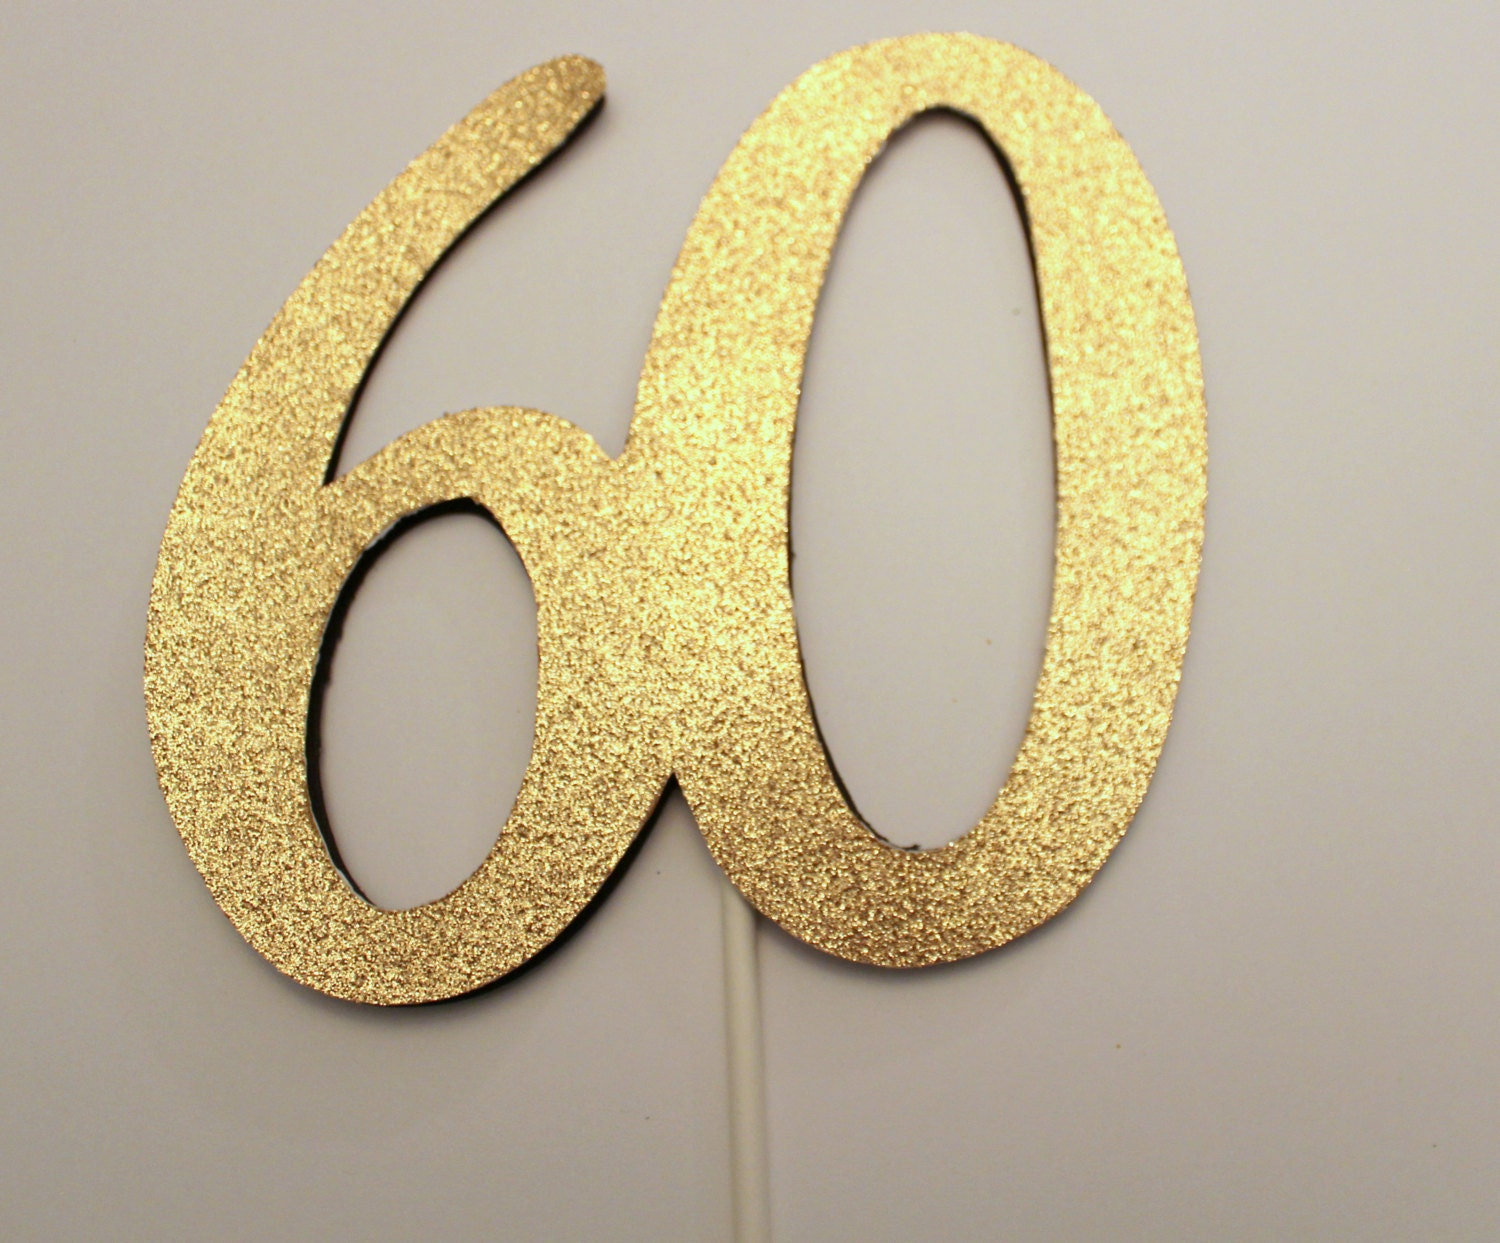 60th birthday cake topper 60 cake topper by kriskropmemories for 60th birthday decoration